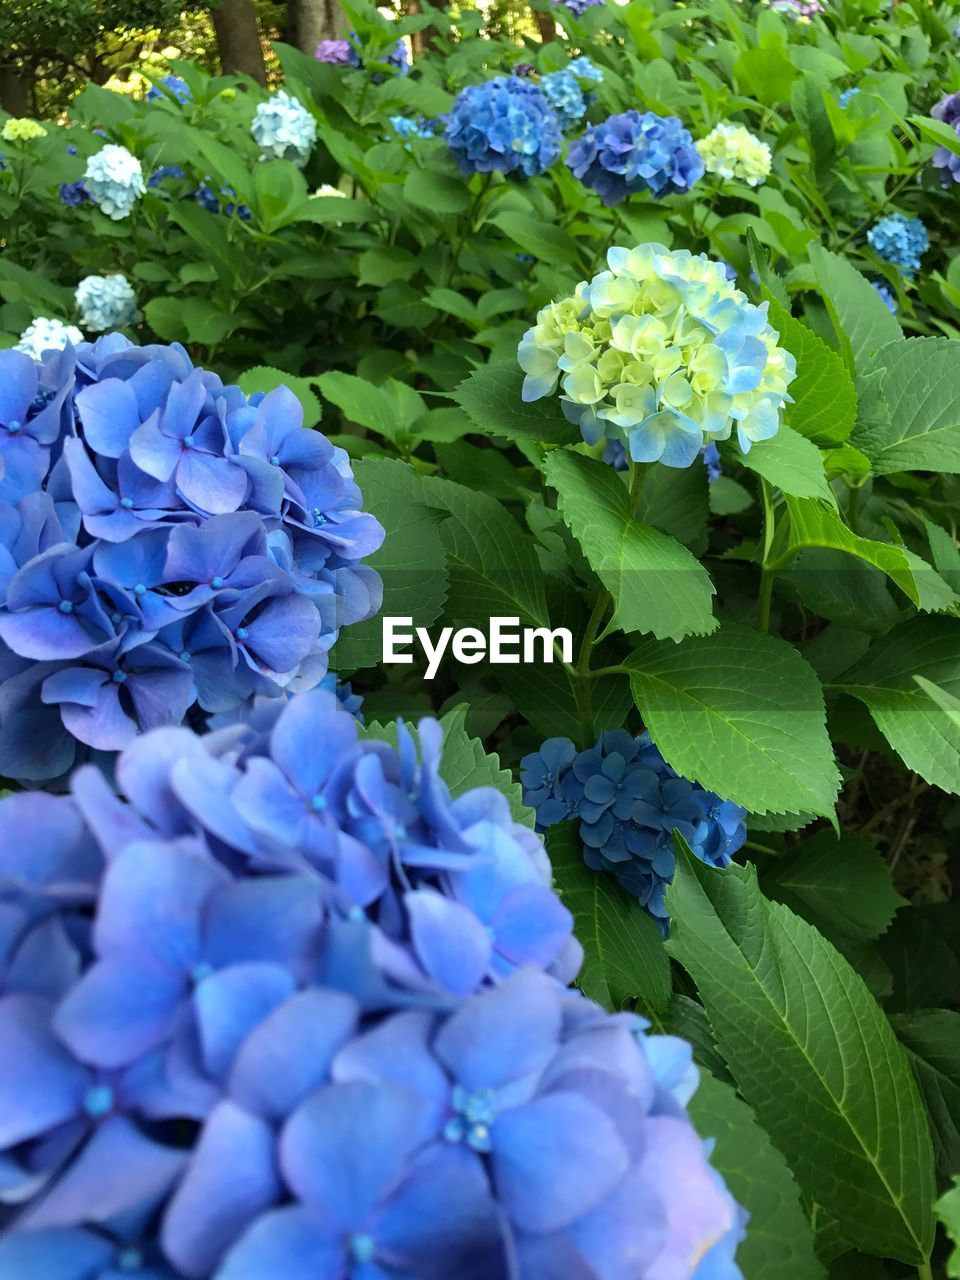 flower, growth, nature, plant, beauty in nature, purple, fragility, leaf, freshness, green color, hydrangea, petal, day, outdoors, no people, blue, flower head, blooming, close-up